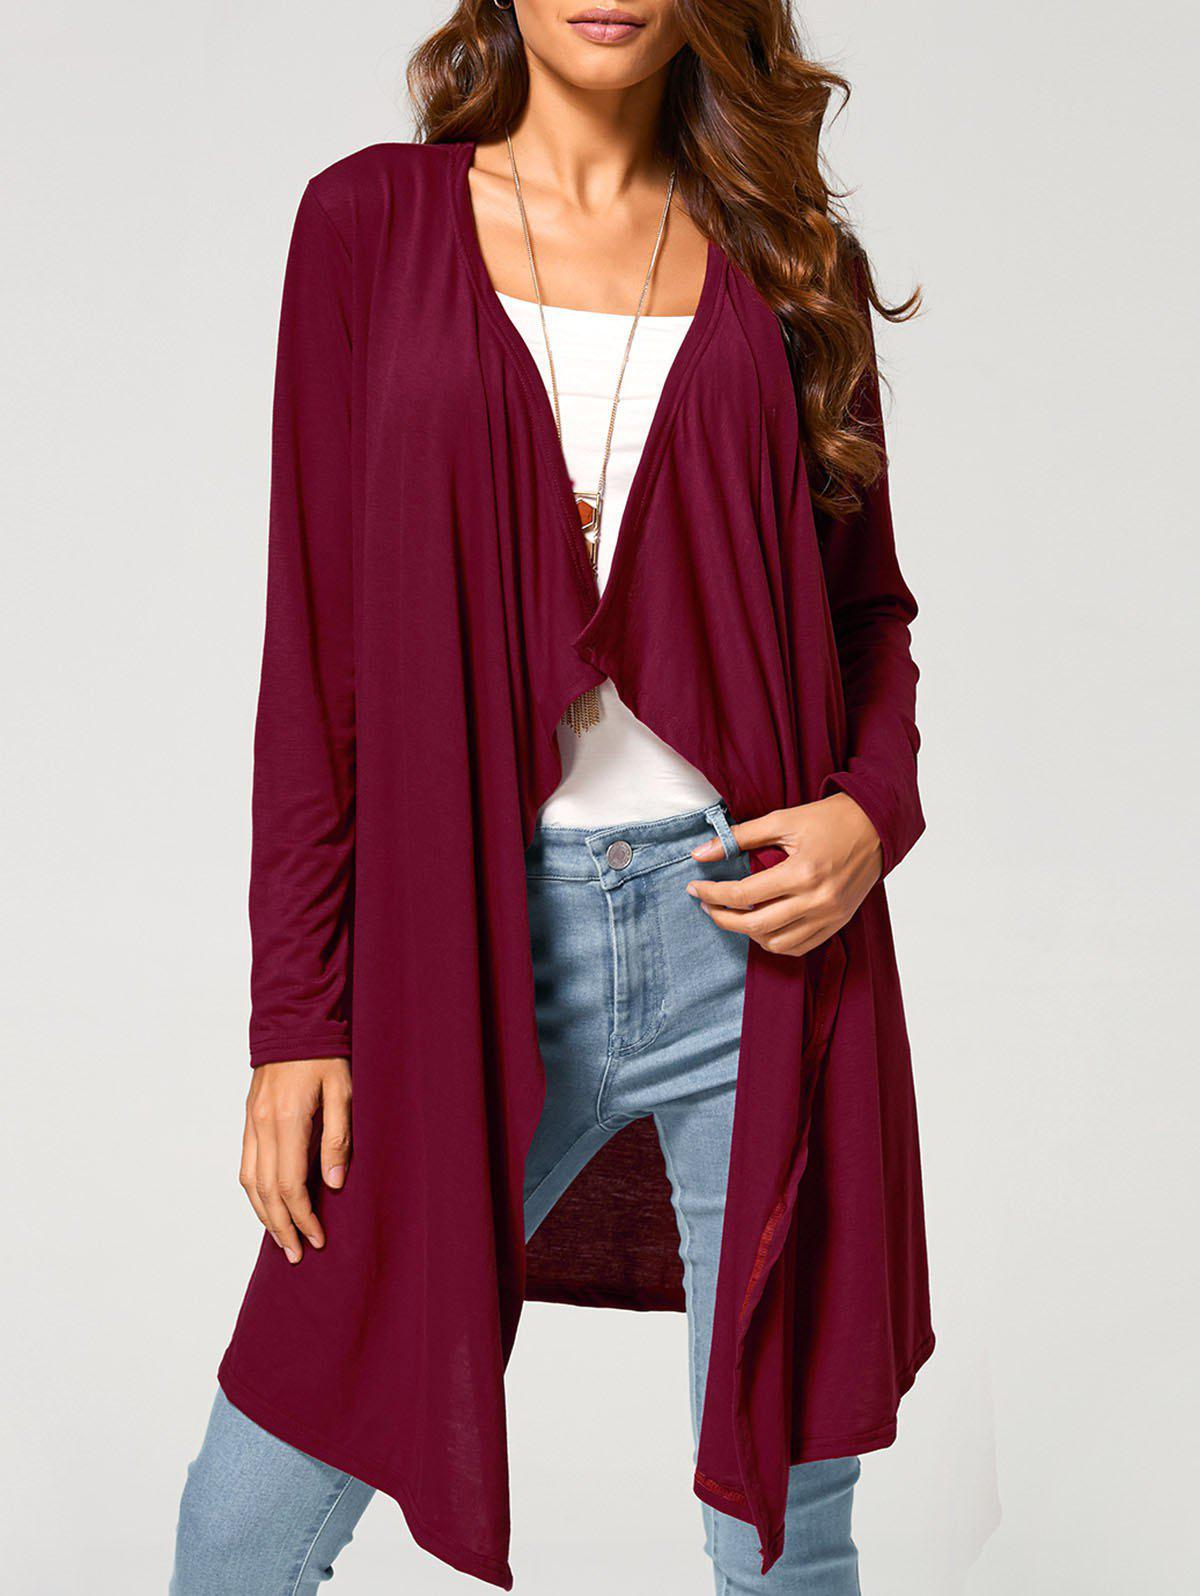 Long Duster Draped CardiganWOMEN<br><br>Size: L; Color: WINE RED; Type: Cardigans; Material: Polyester; Sleeve Length: Full; Collar: Collarless; Style: Casual; Pattern Type: Solid; Season: Fall; Weight: 0.370kg; Package Contents: 1 x Cardigan;